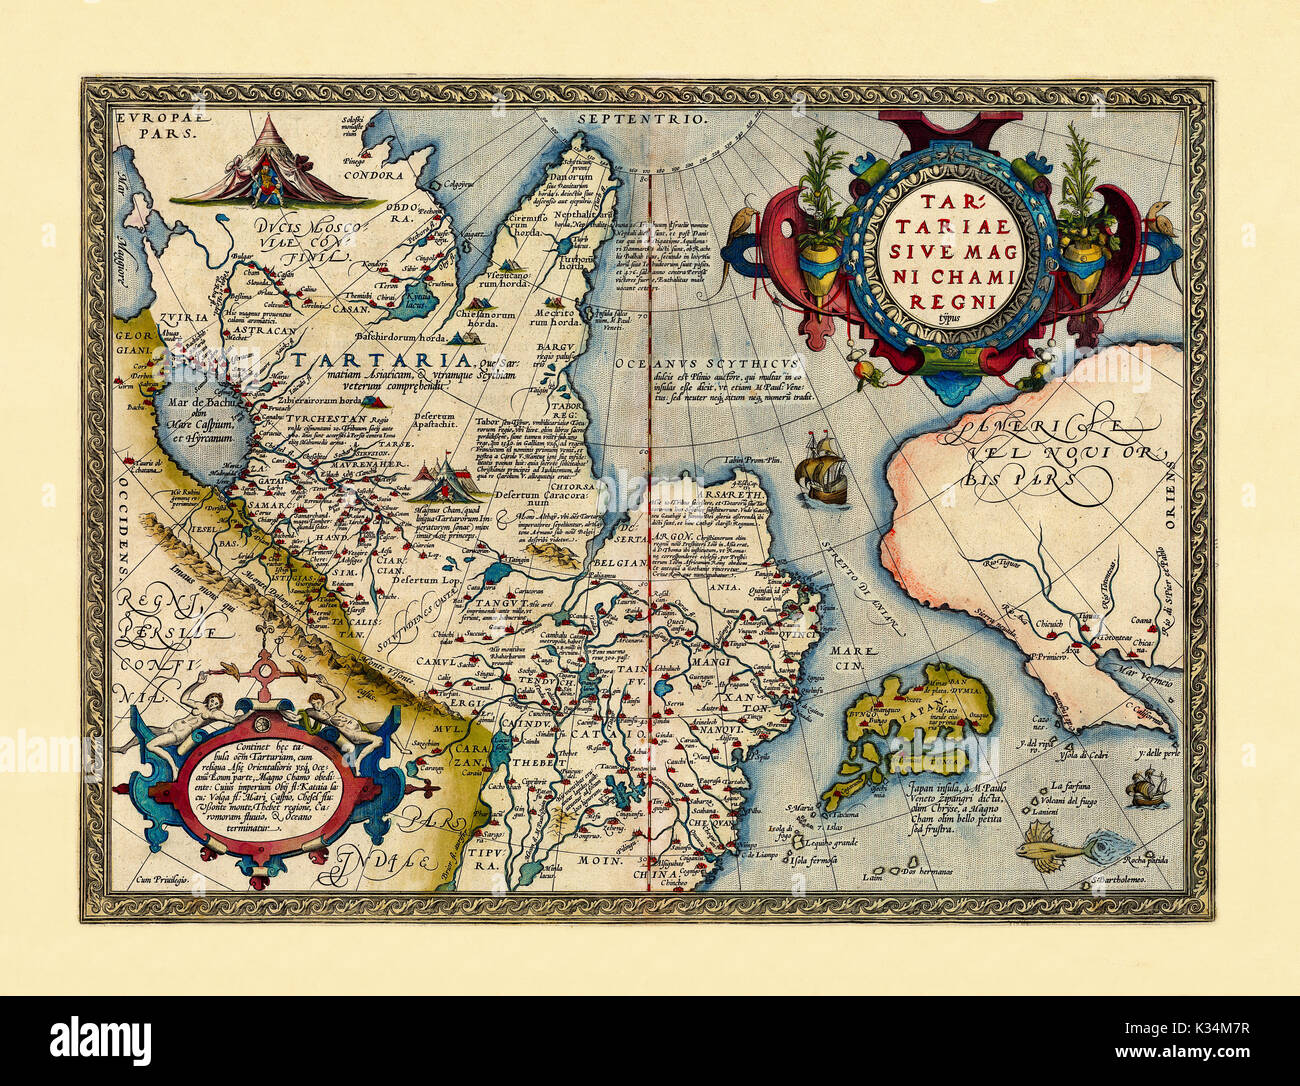 Old map of Easter Russia. Excellent state of preservation realized in ancient style. All the graphic composition is inside a frame. By Ortelius, Theatrum Orbis Terrarum, Antwerp, 1570 - Stock Image